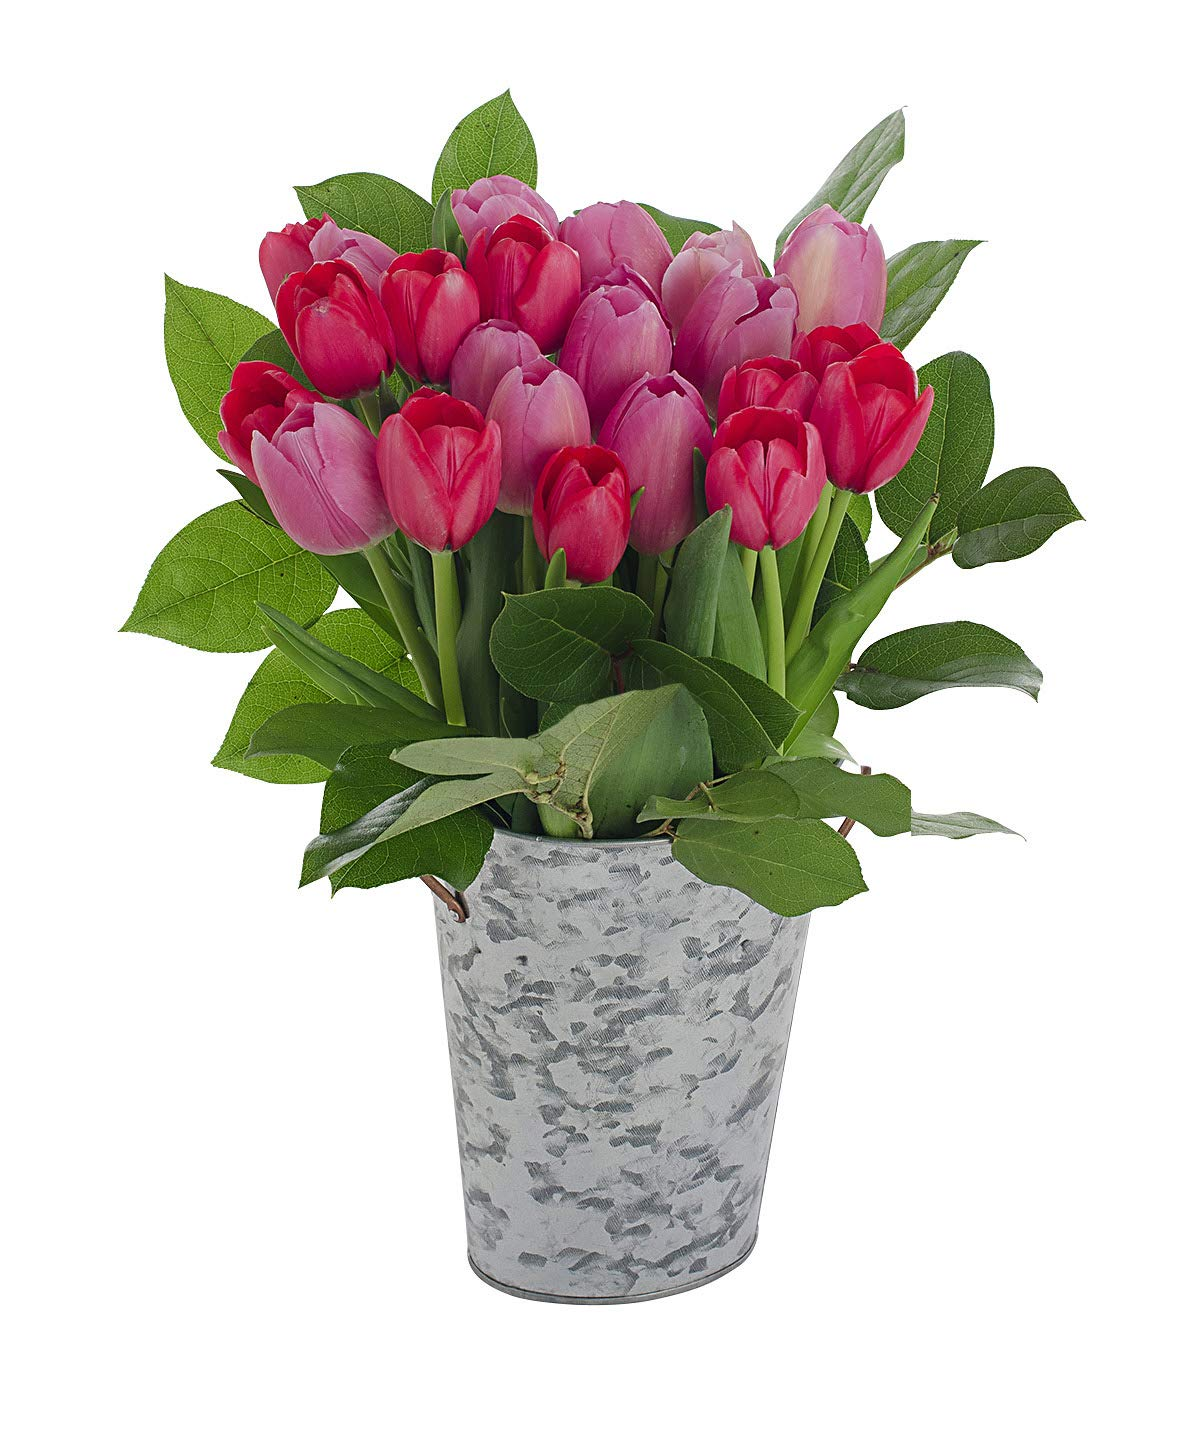 Stargazer Barn Hot Lips Bouquet, Fresh Pink & Red Tulips With Vase, 24 Count